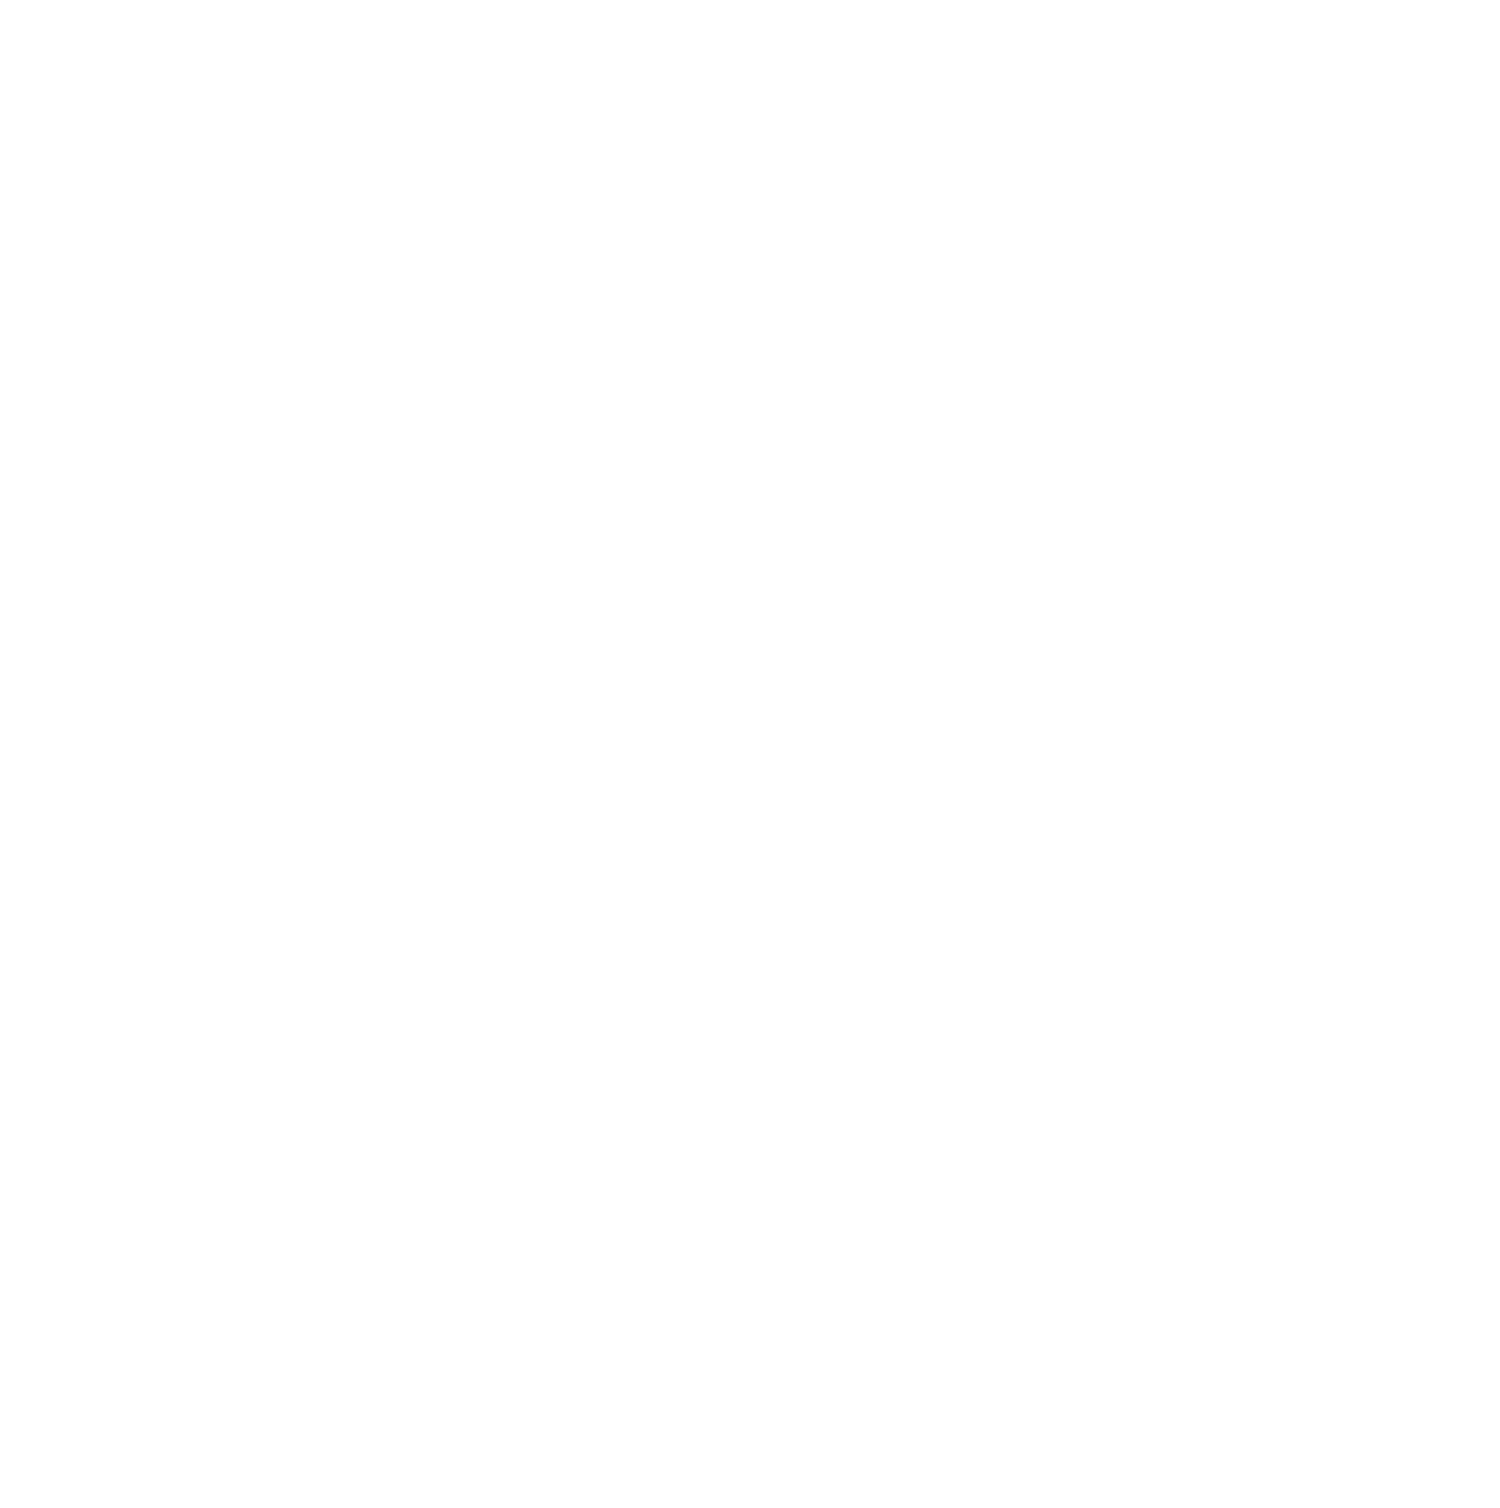 The Hoxton Pony